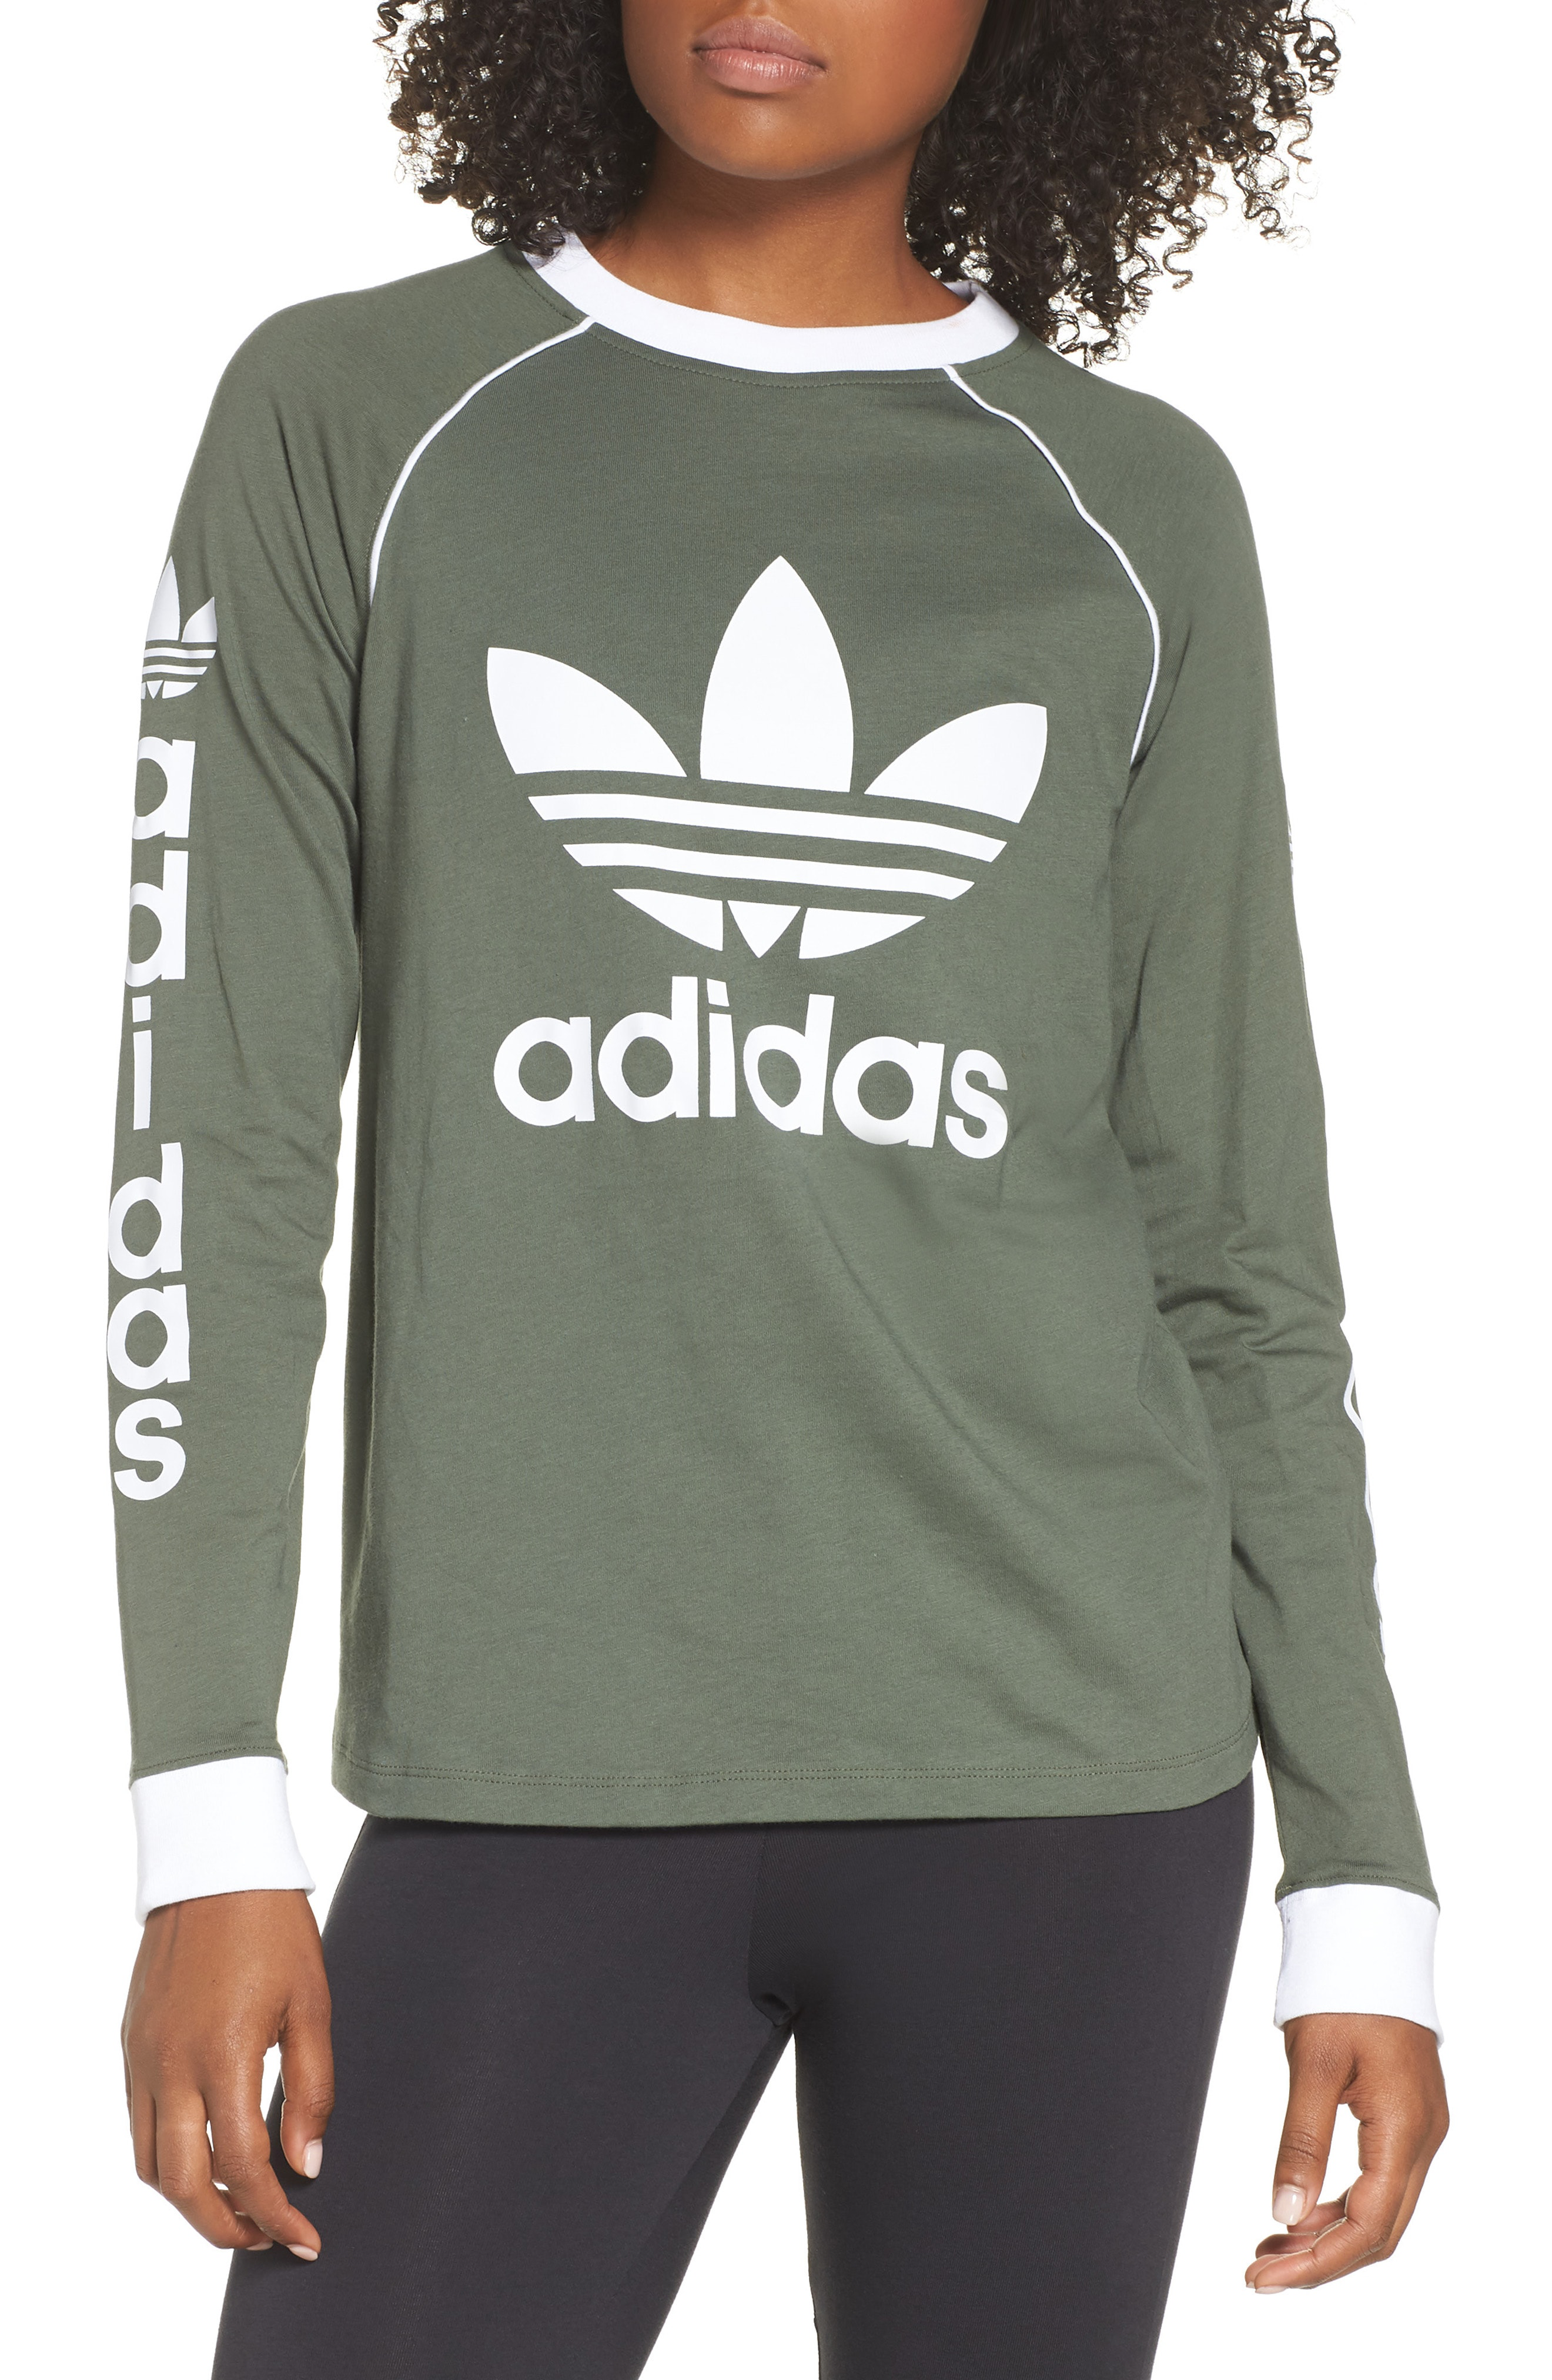 44 Best Ladies Adidas Wear. images in 2020 | Adidas outfit